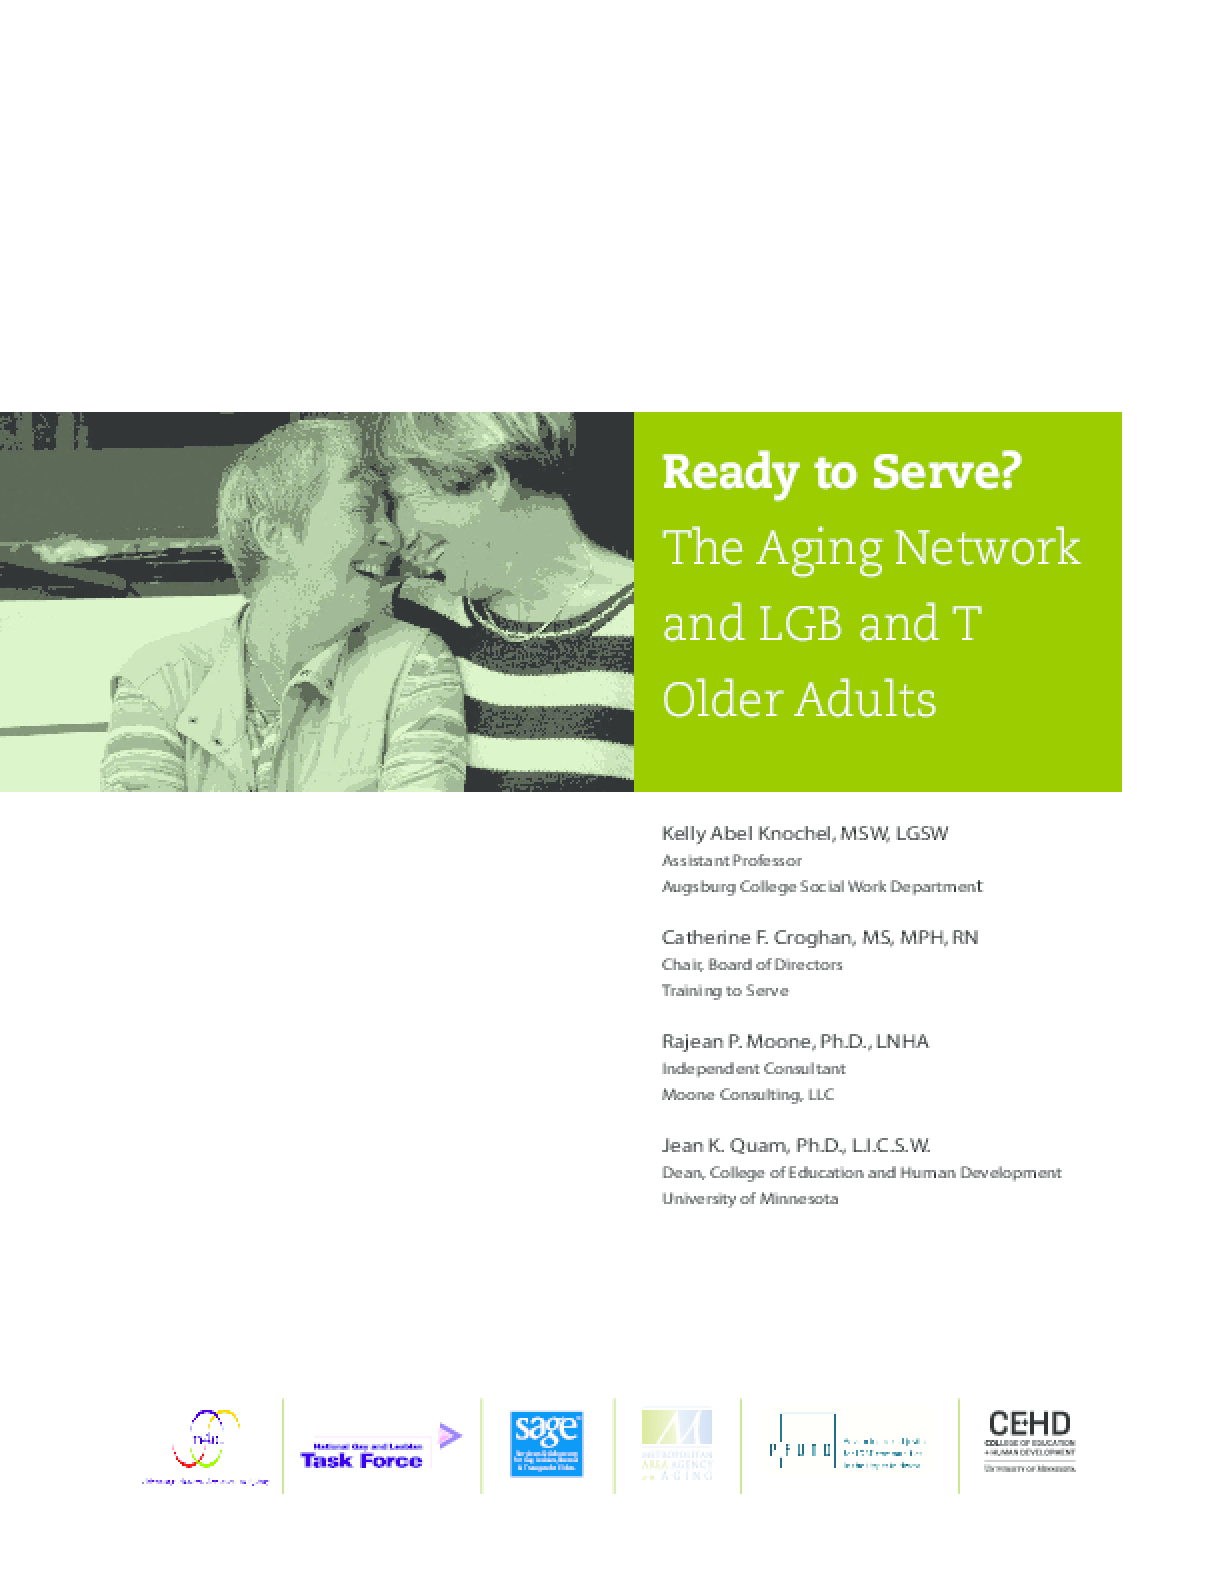 Ready to Serve? The Aging Network and LGB and T Older Adults